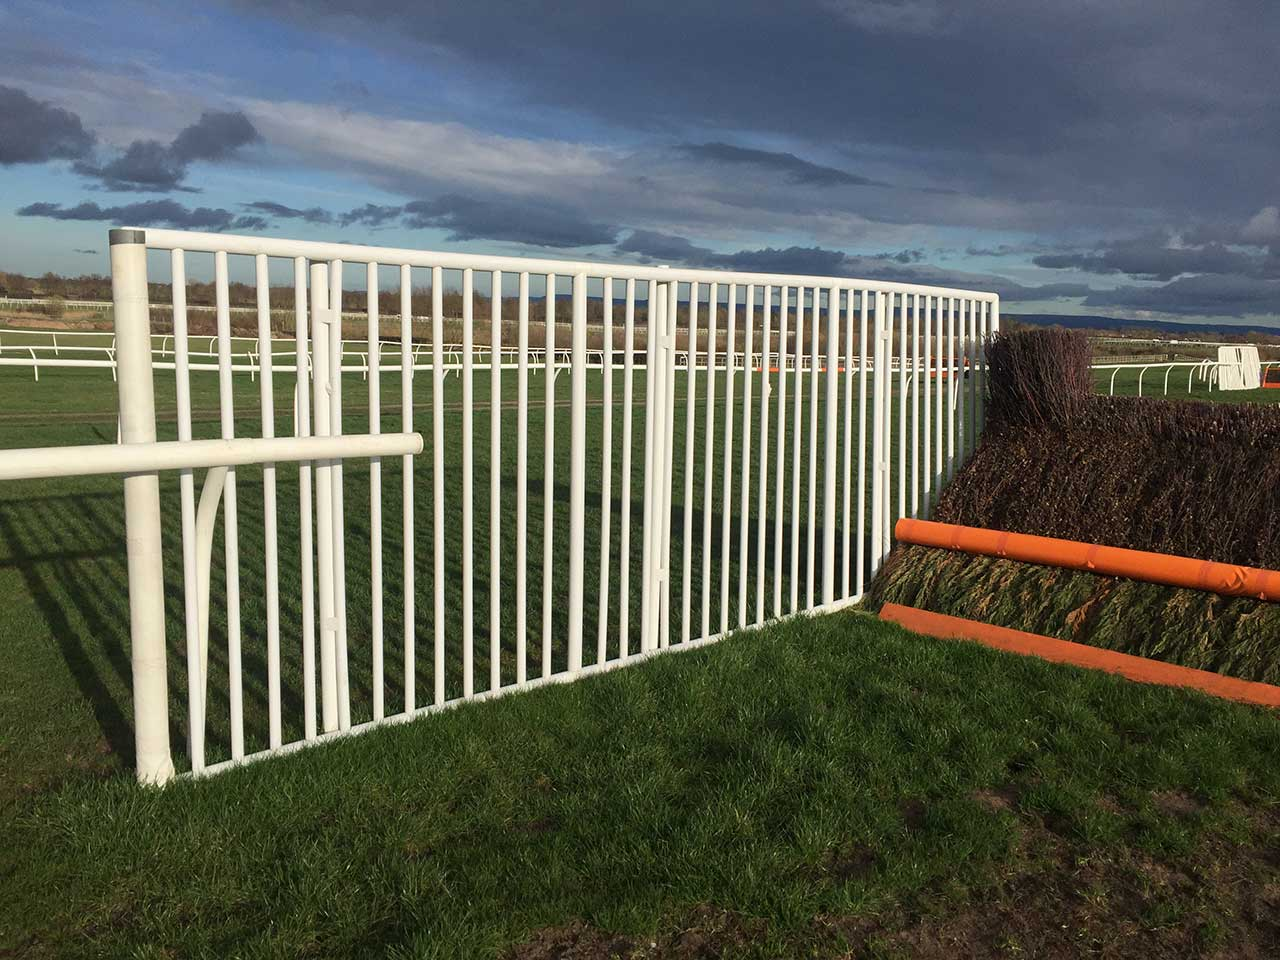 Watt Fences wing